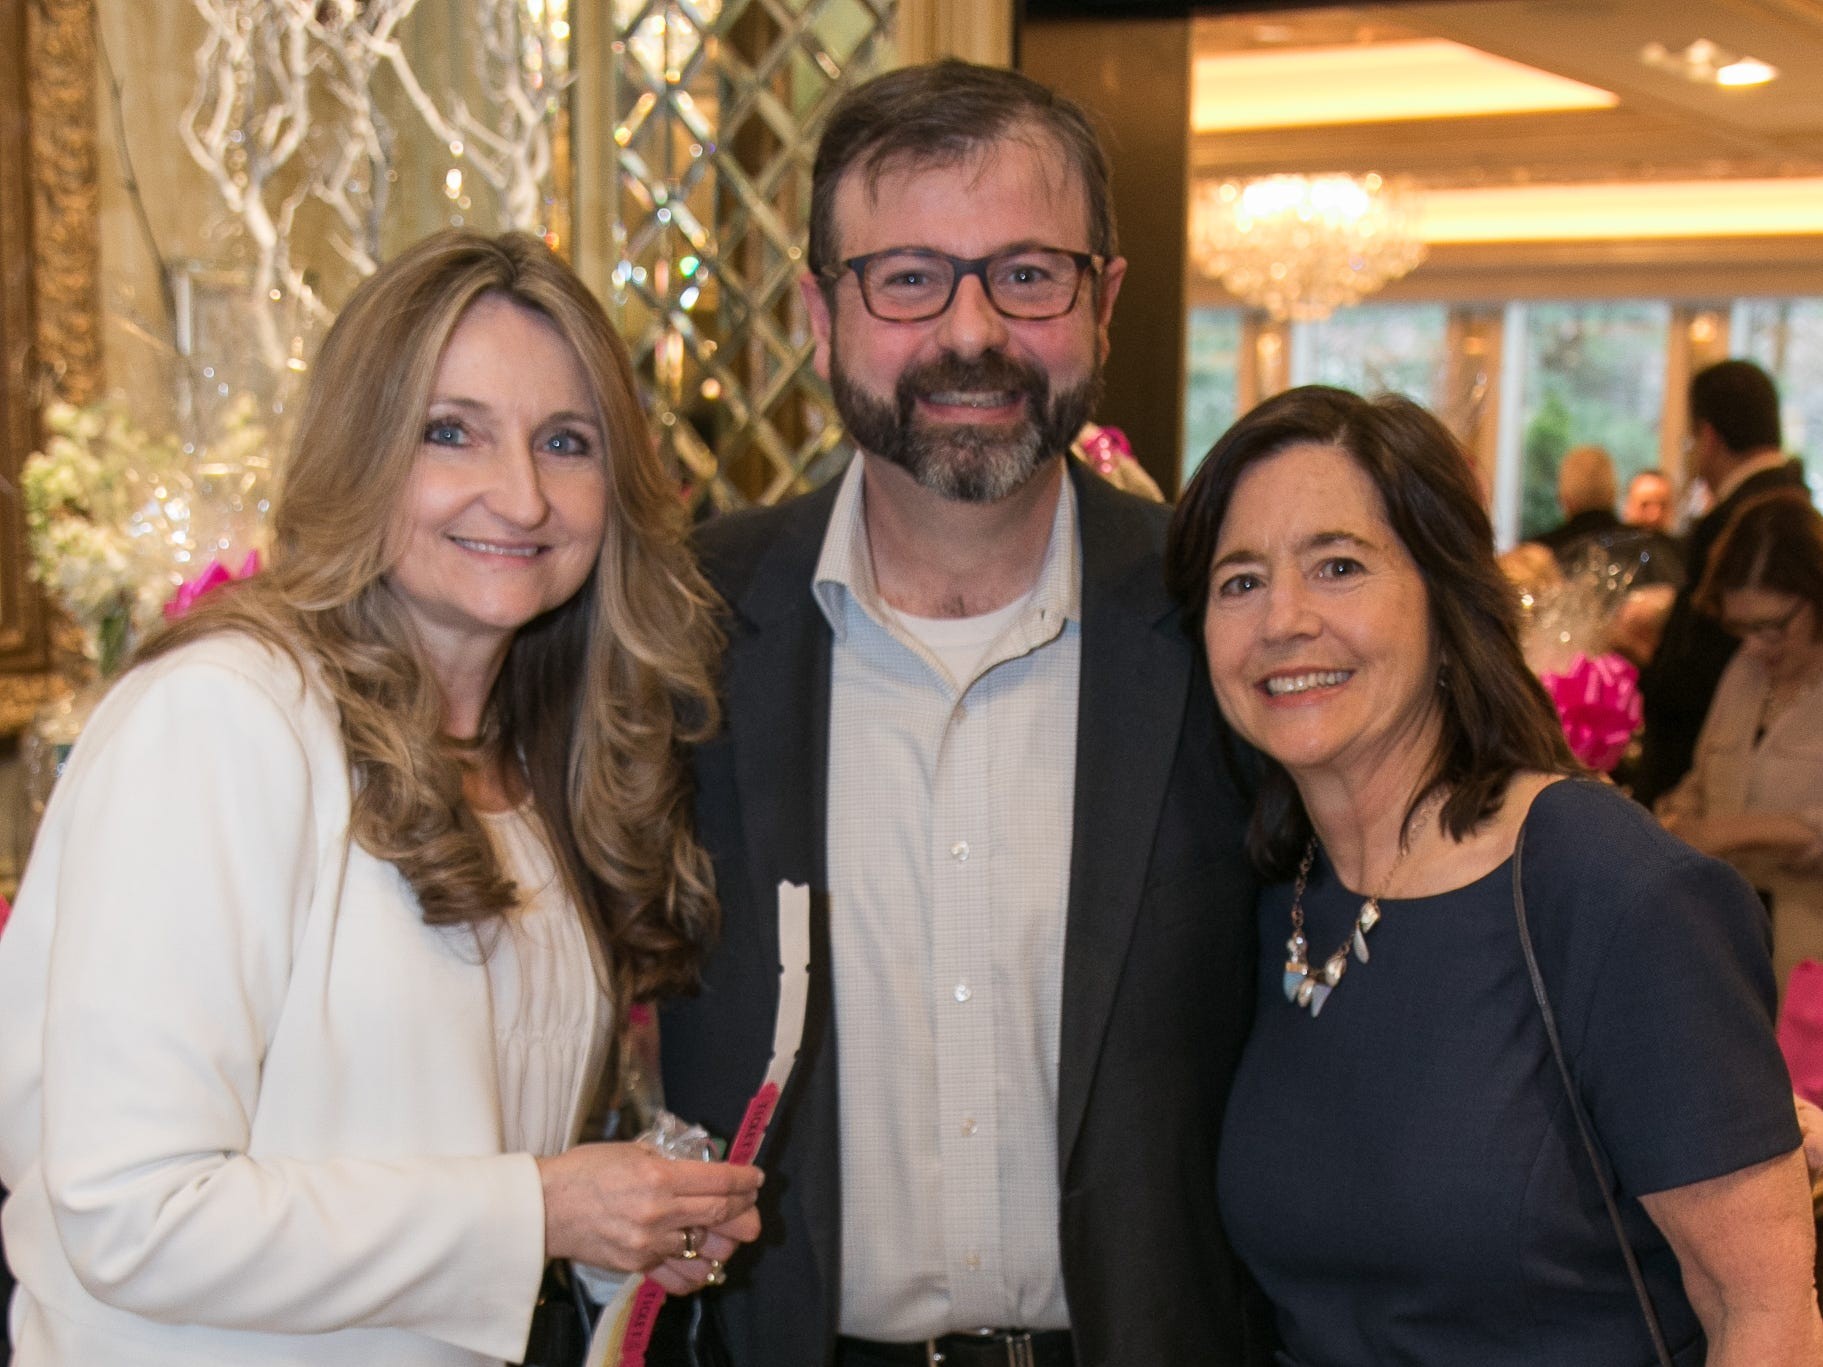 Ronnie Morrone, Robert Stanley, LouAnn McGlinchey. New Hope, a Pregnancy Resource Center, held their annual gala at Seasons in Washington Township. 04/05/2019